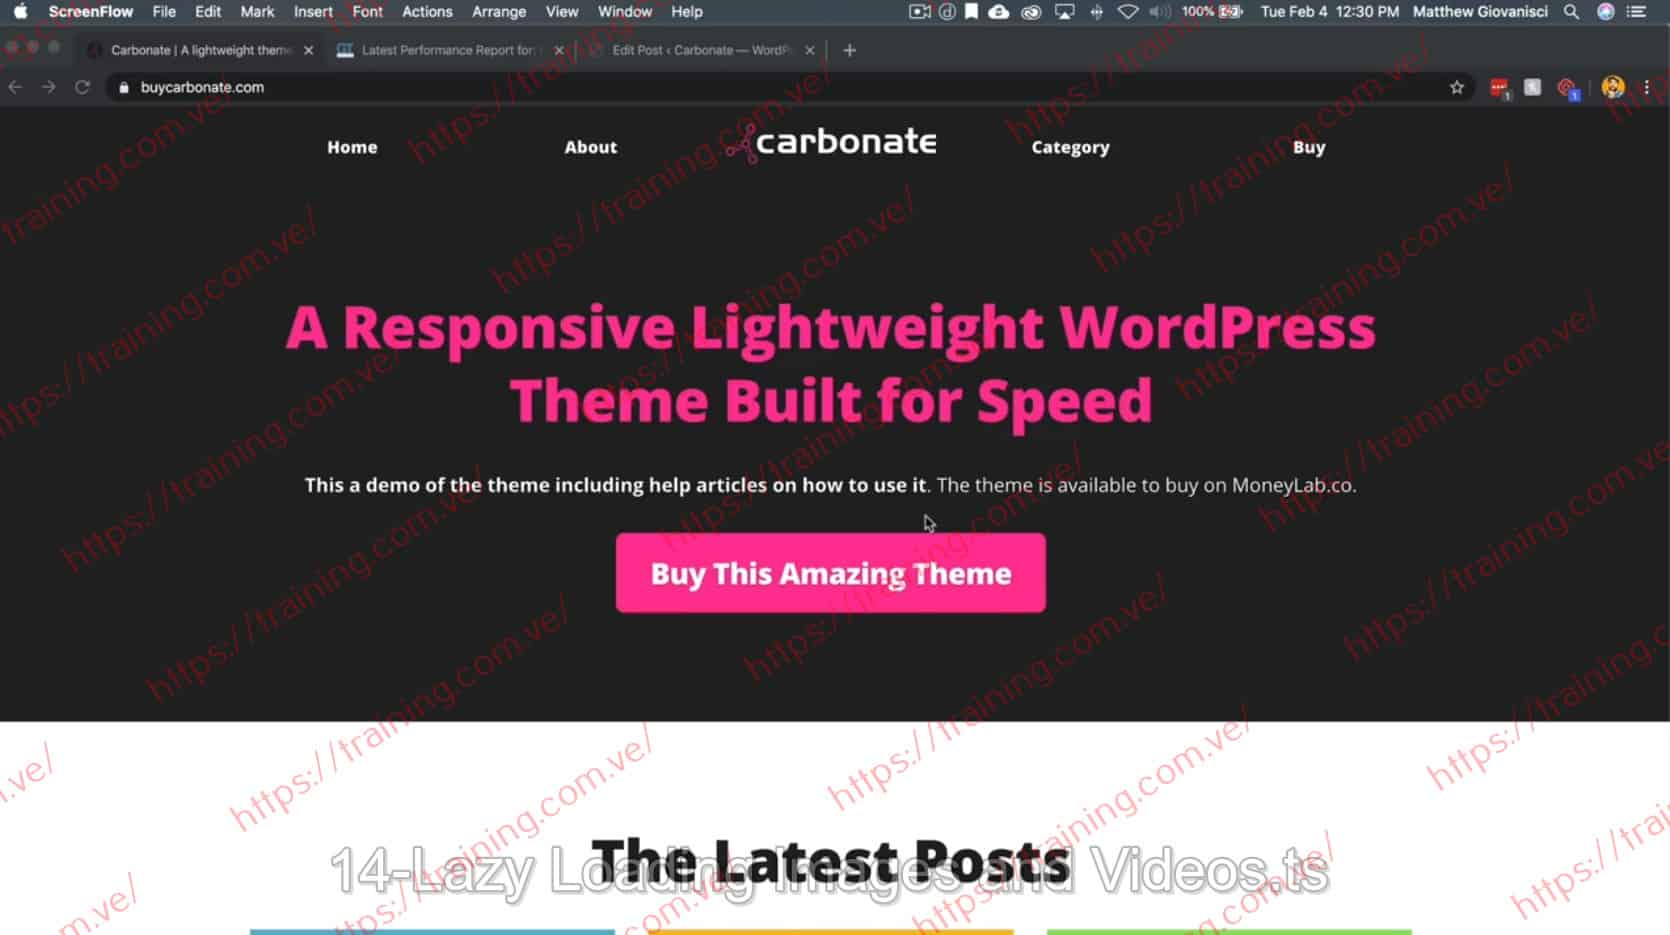 PageSpeed for Bloggers by Matt Giovanisci Discount